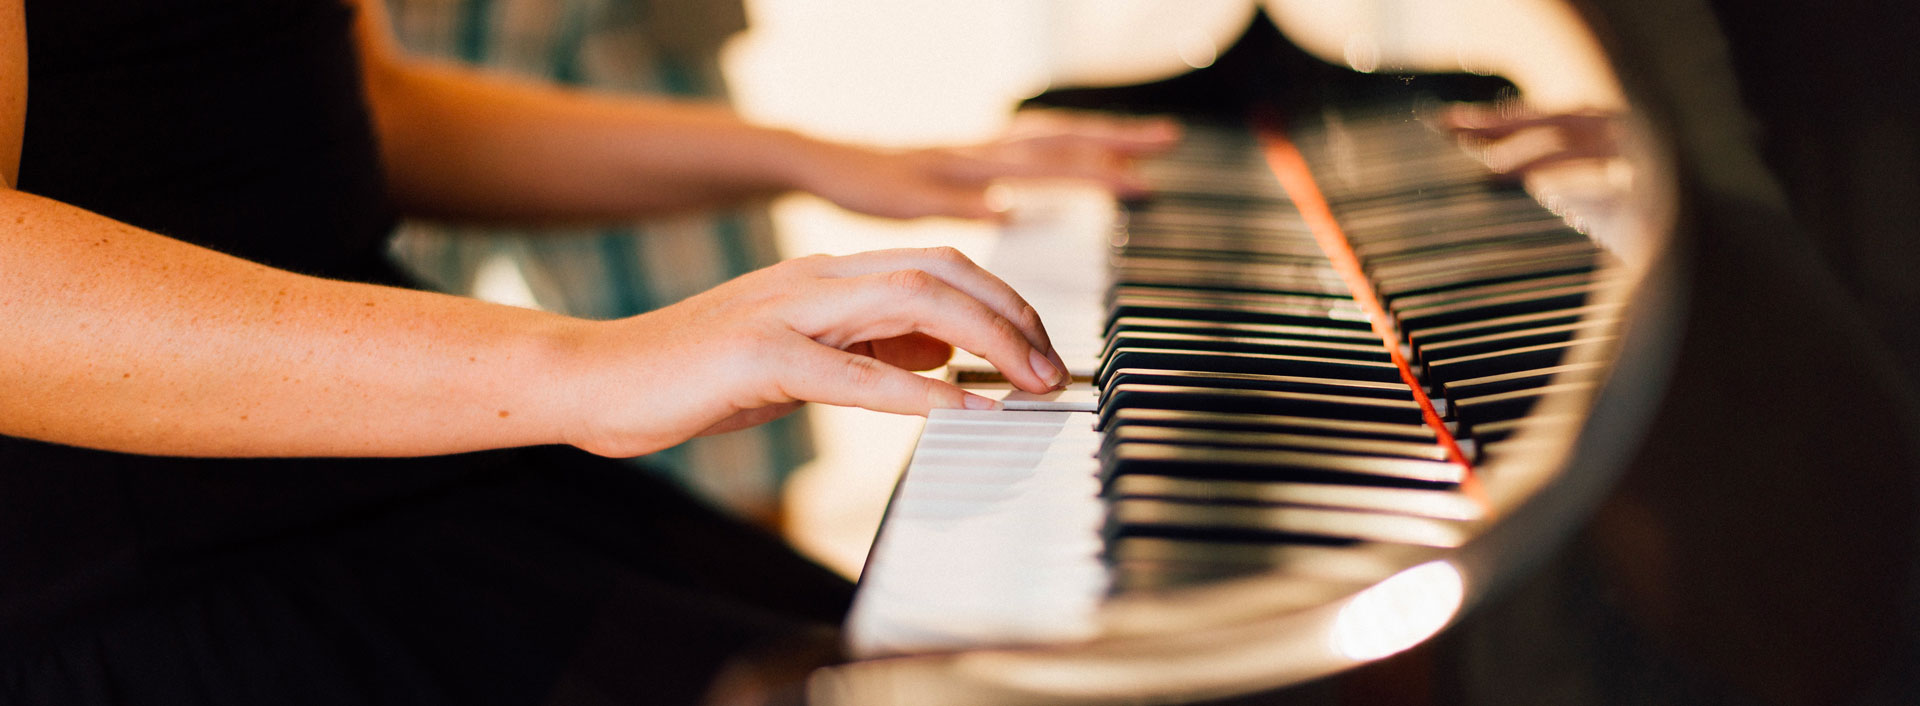 How To Play Piano With Basic Chords